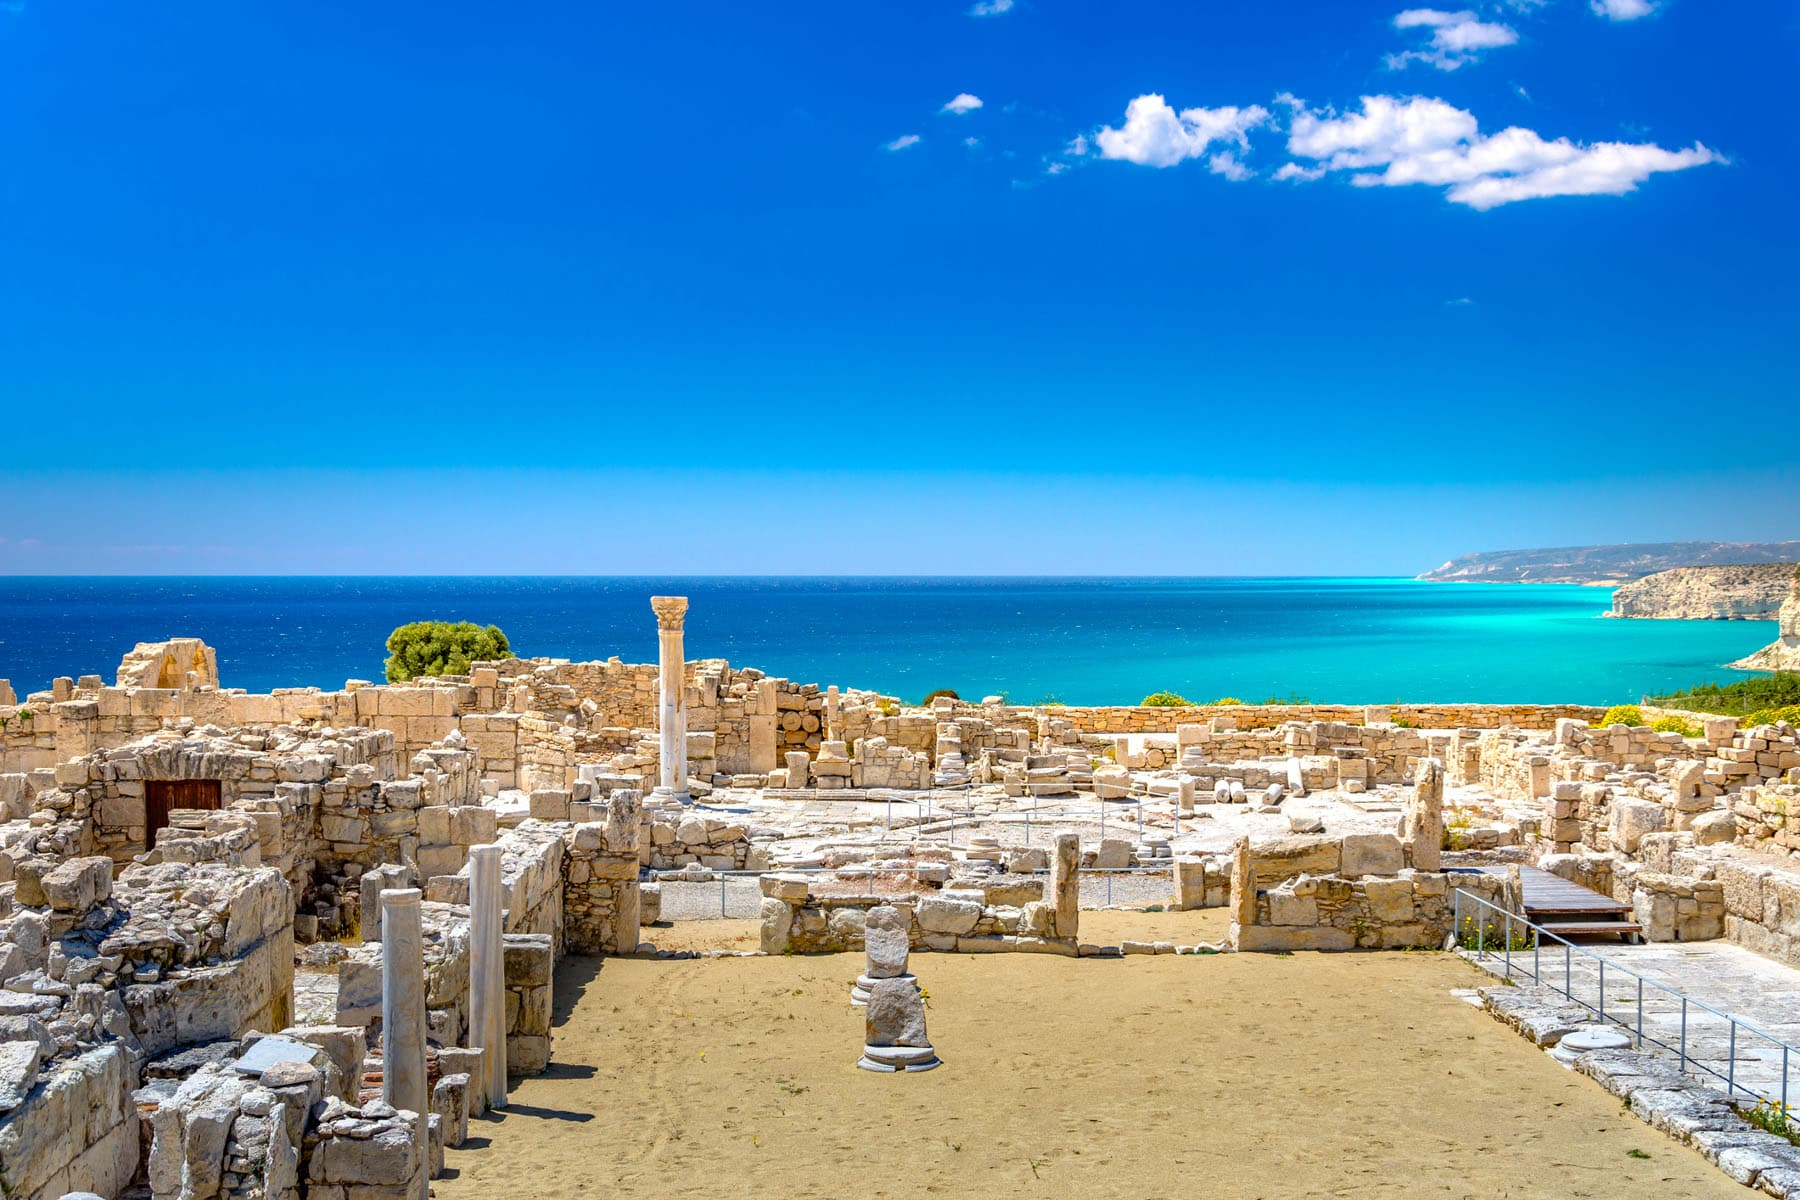 KOURION RUINS - Partenza Travel creates luxury vacations to Cyprus